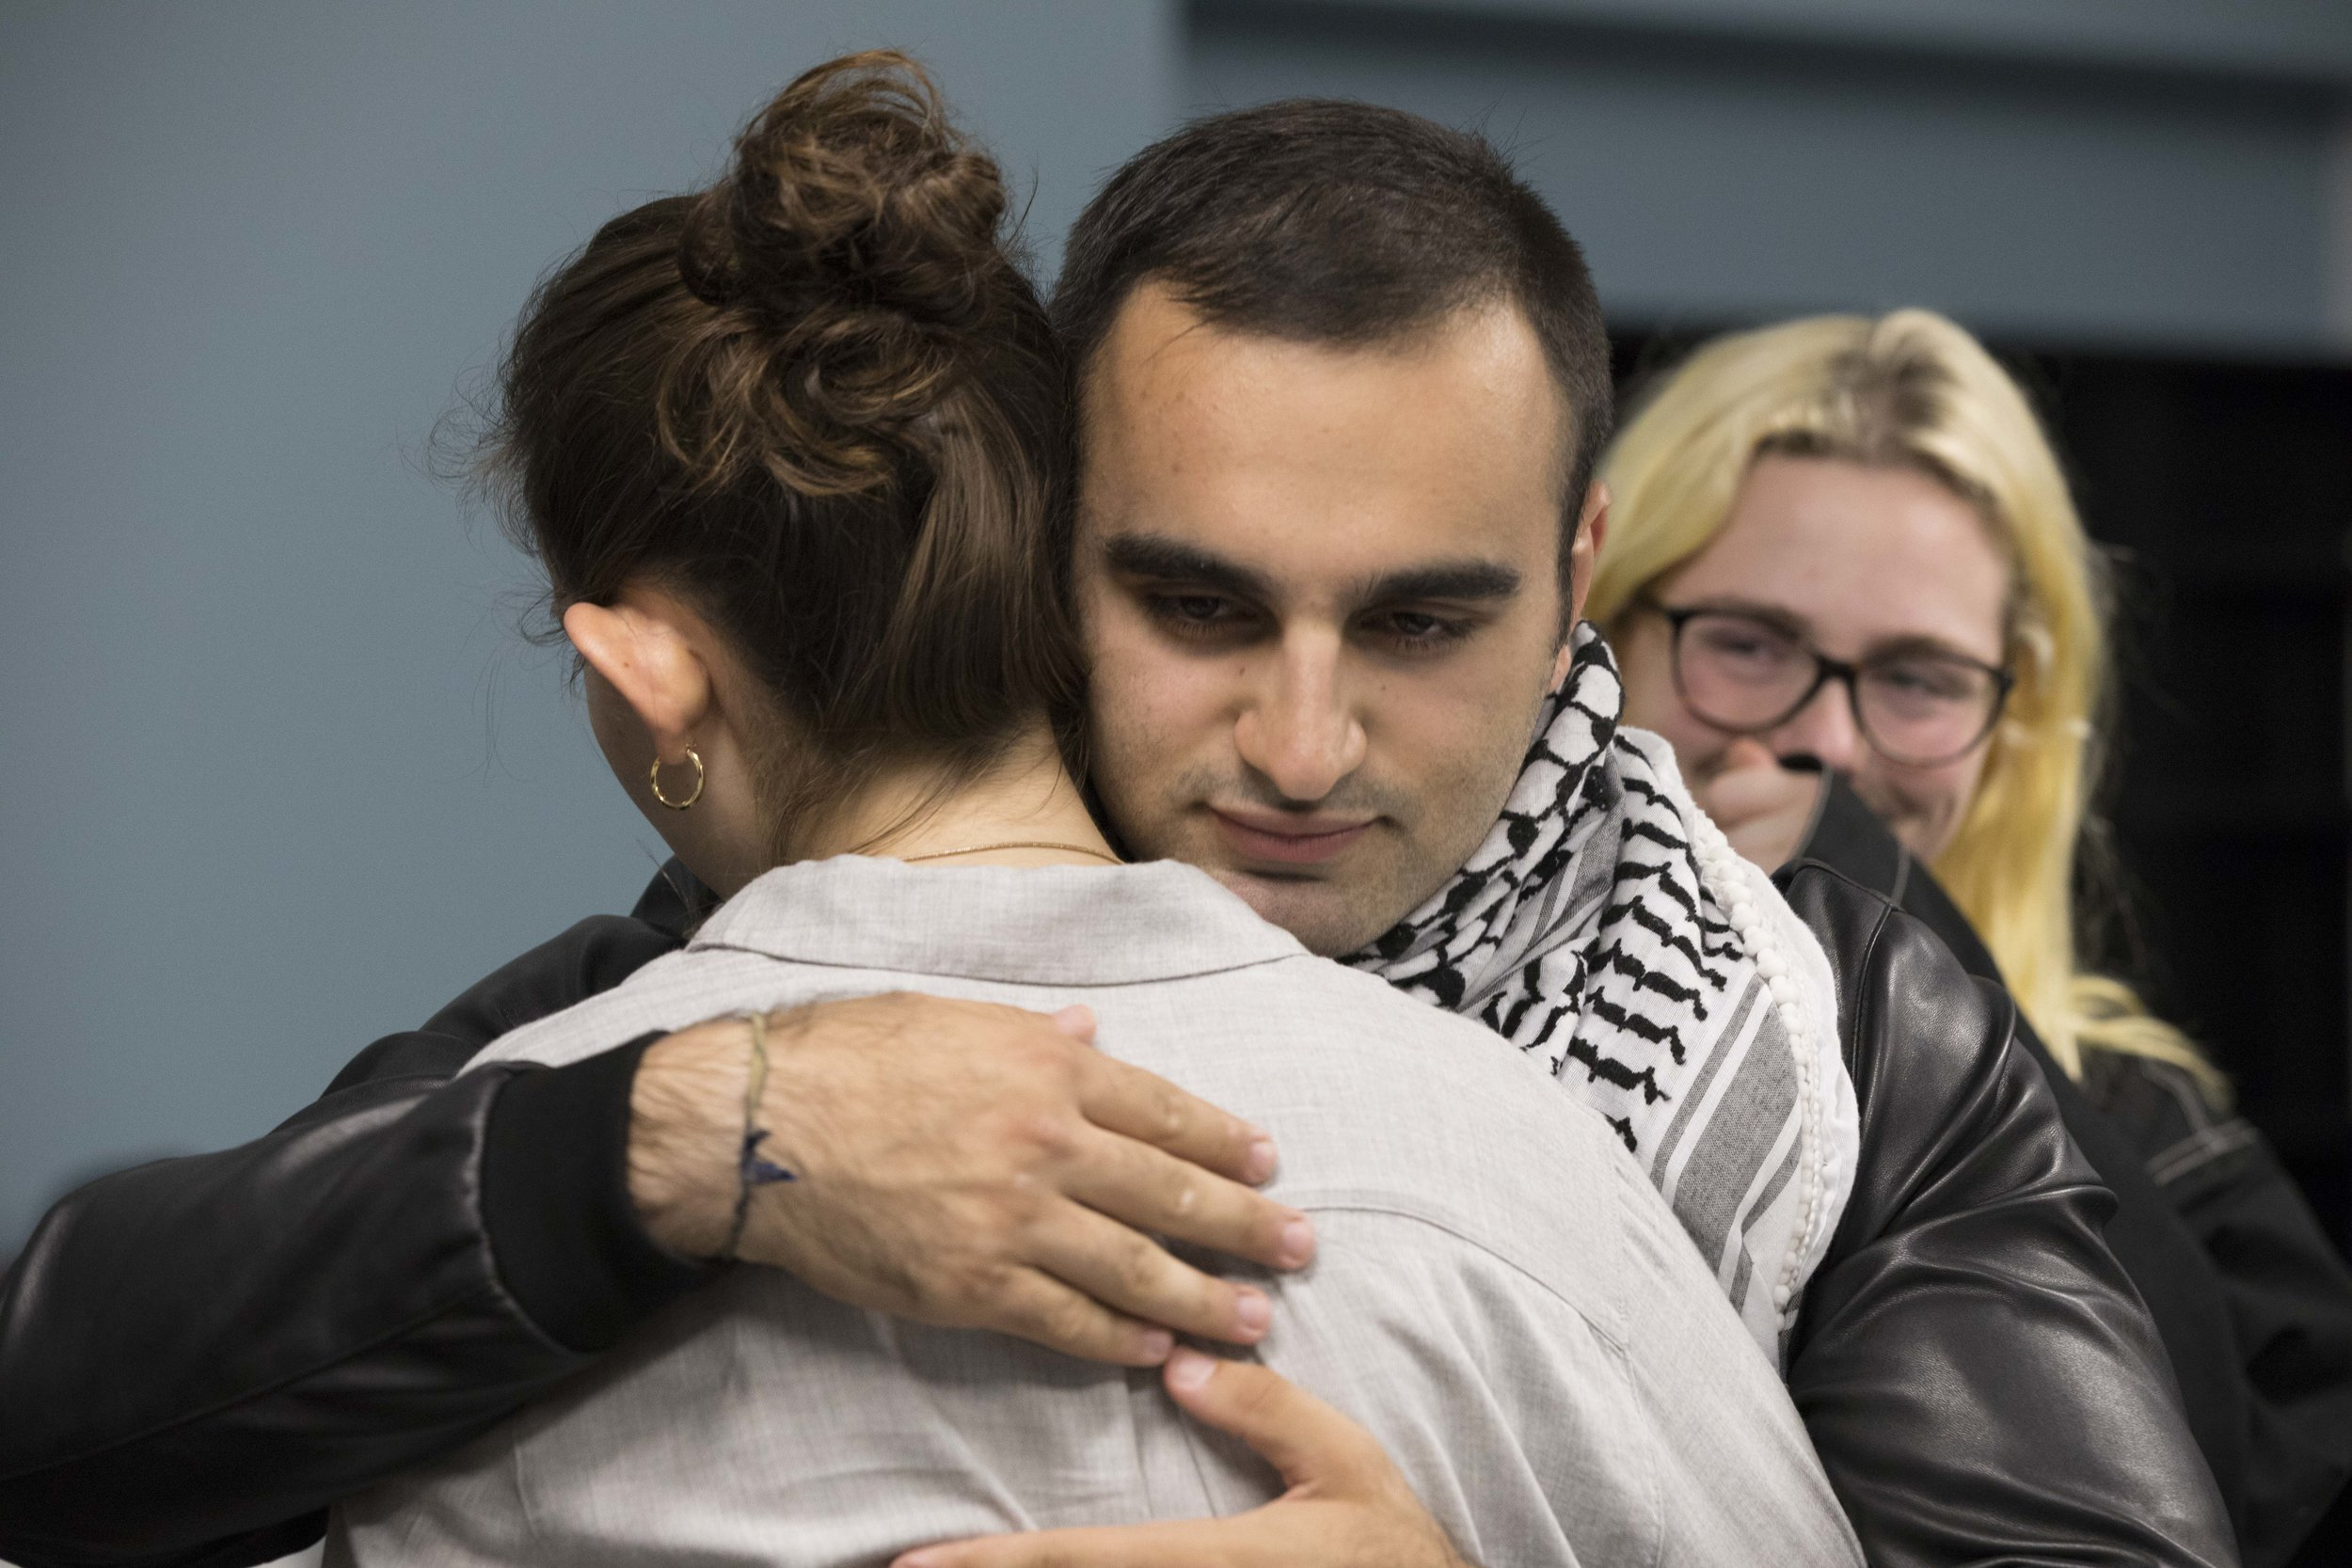 Santa Monica College student Hesham Jarmakani hugging Associate Students President Isabel Rodriguez at the Board of Trustees Meeting at Santa Monica College in Santa Monica, California on Tuesday April 2, 2019. Photographer (Tanya Barcessat / The Corsair)